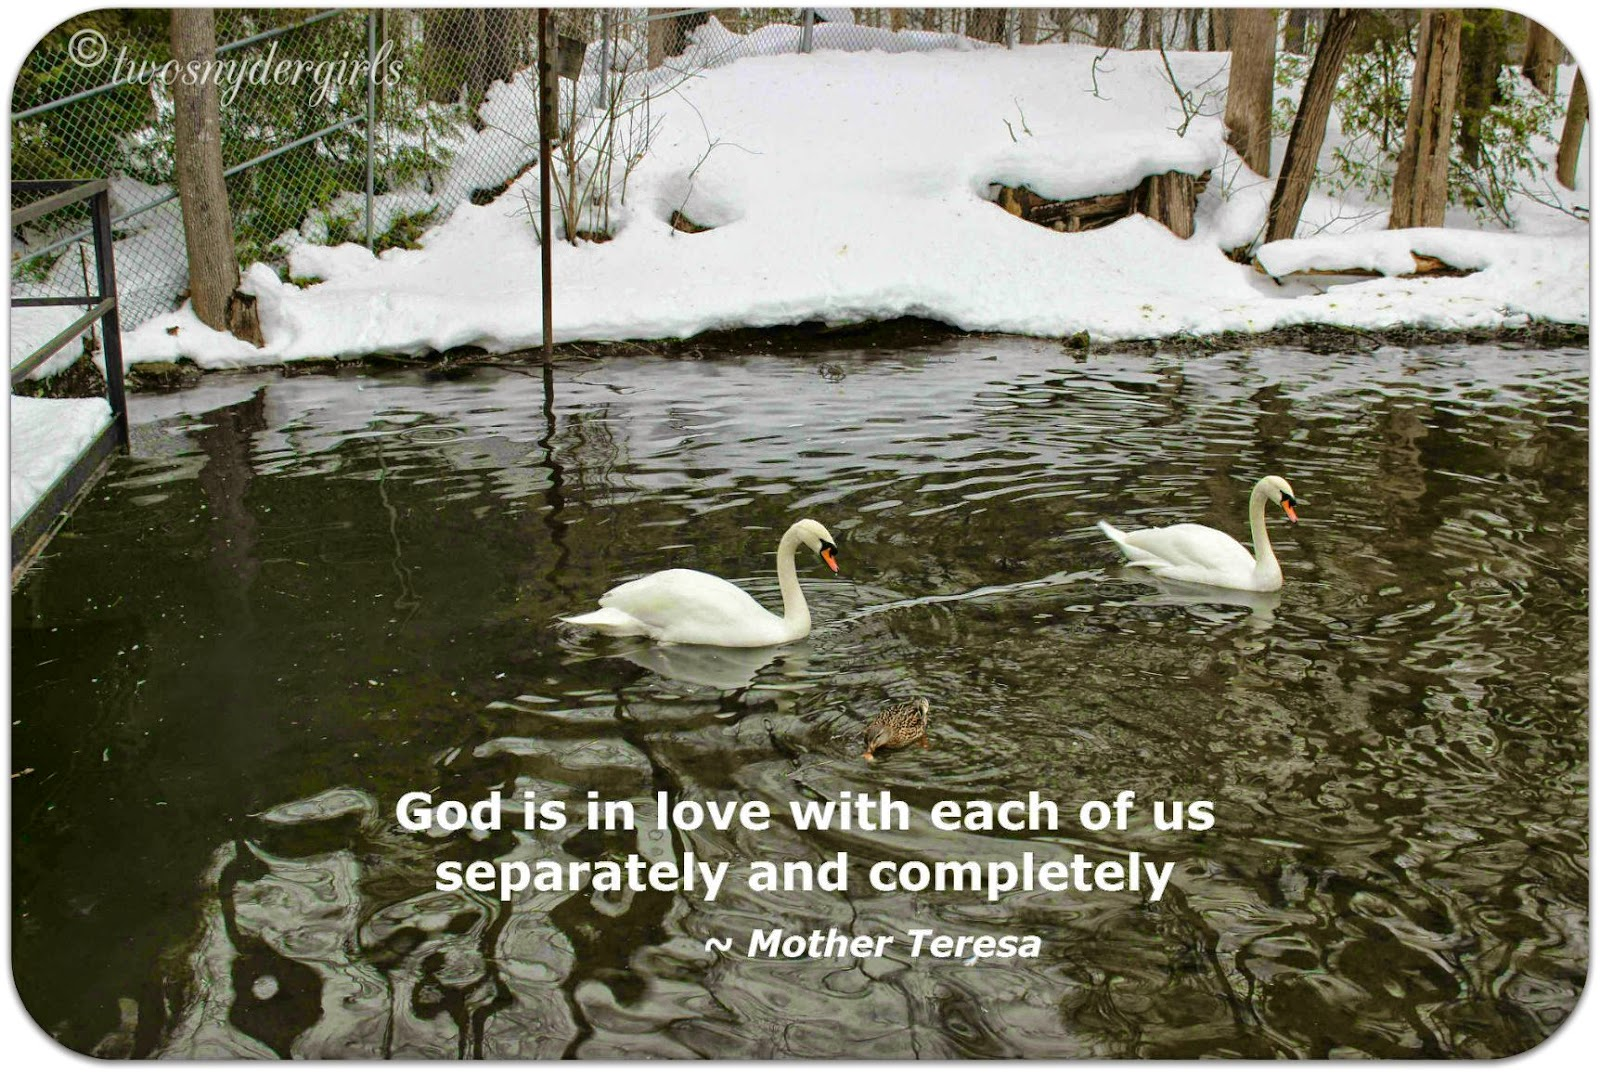 Mother Teresa quote God is in love with each of us